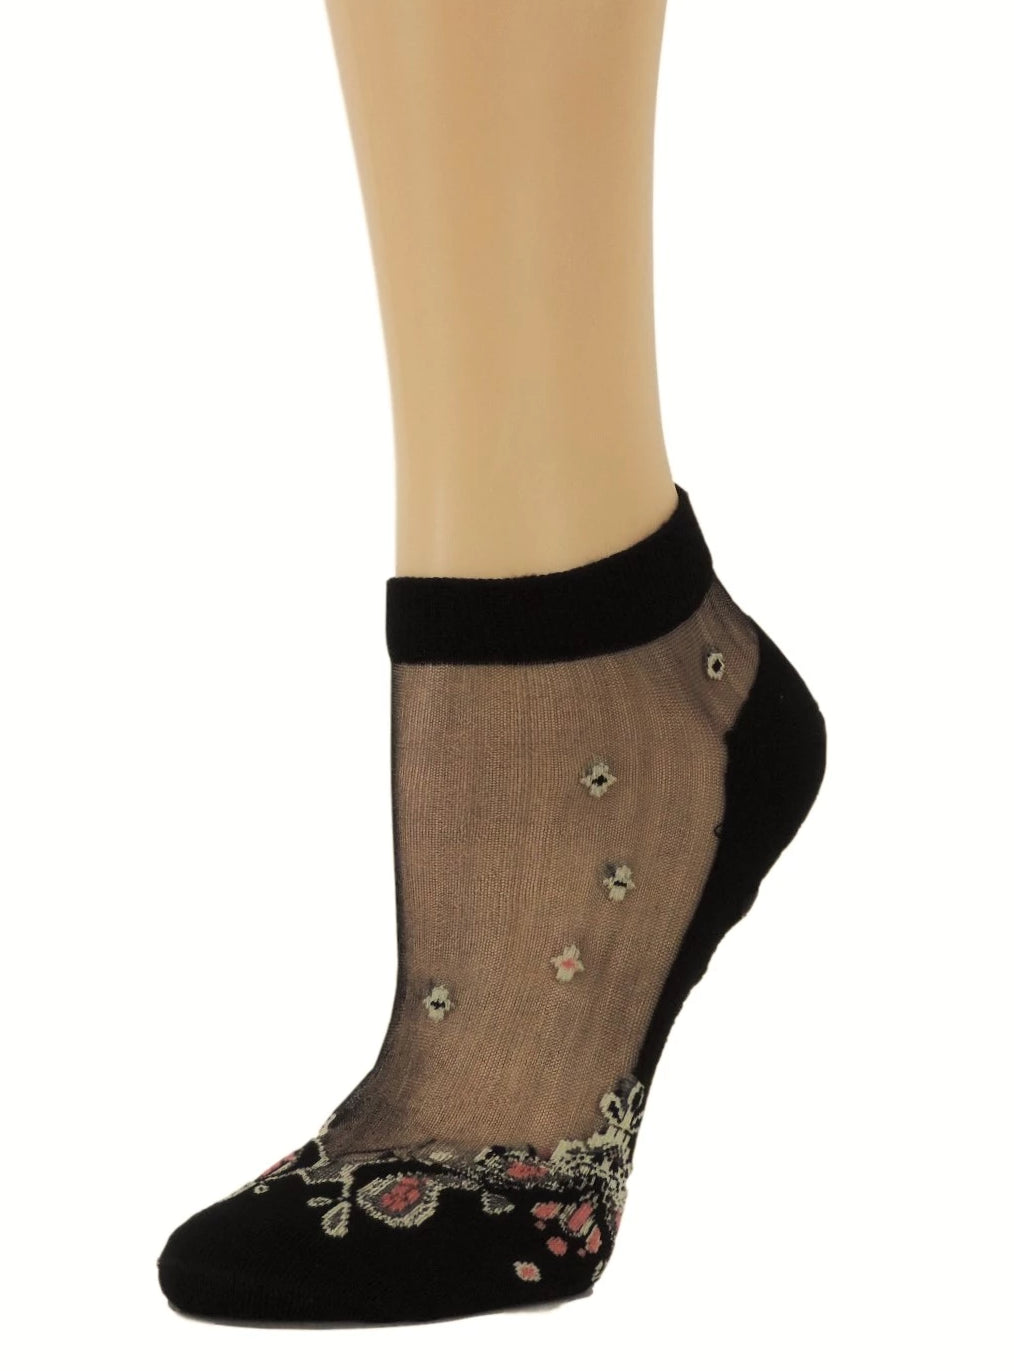 Glorious Chandelier Ankle Sheer - Global Trendz Fashion®